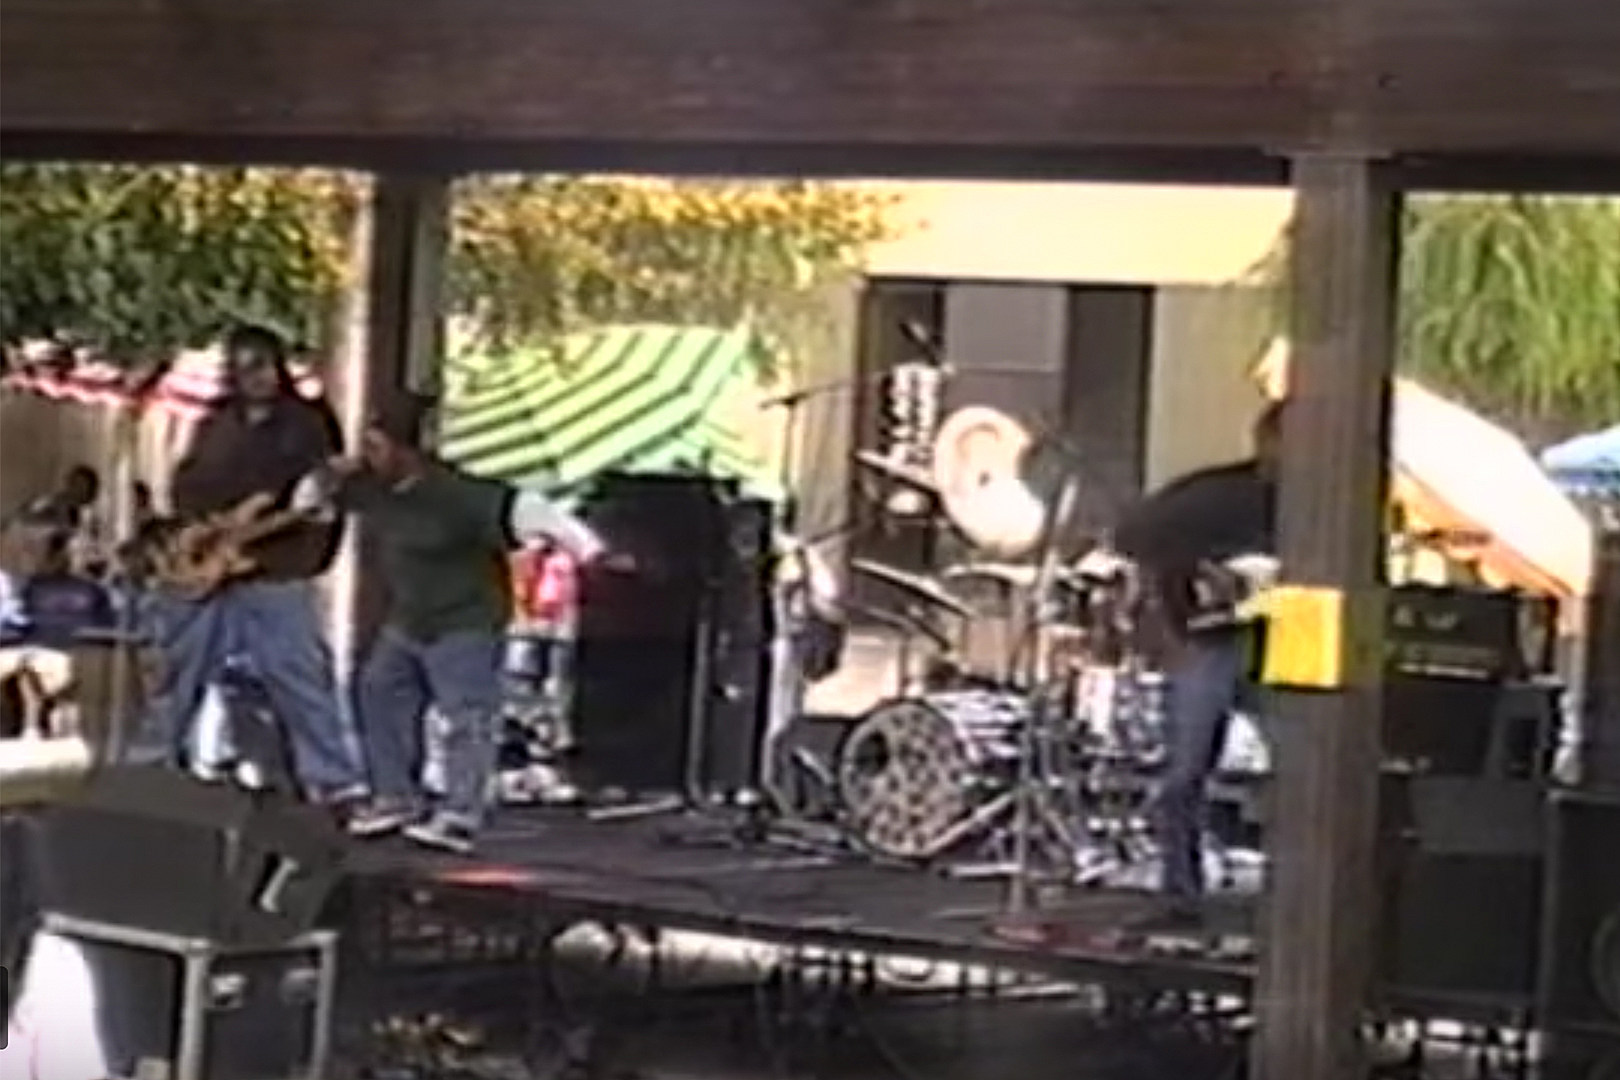 Watch Rage Against the Machine Play First Show 26 Years Ago